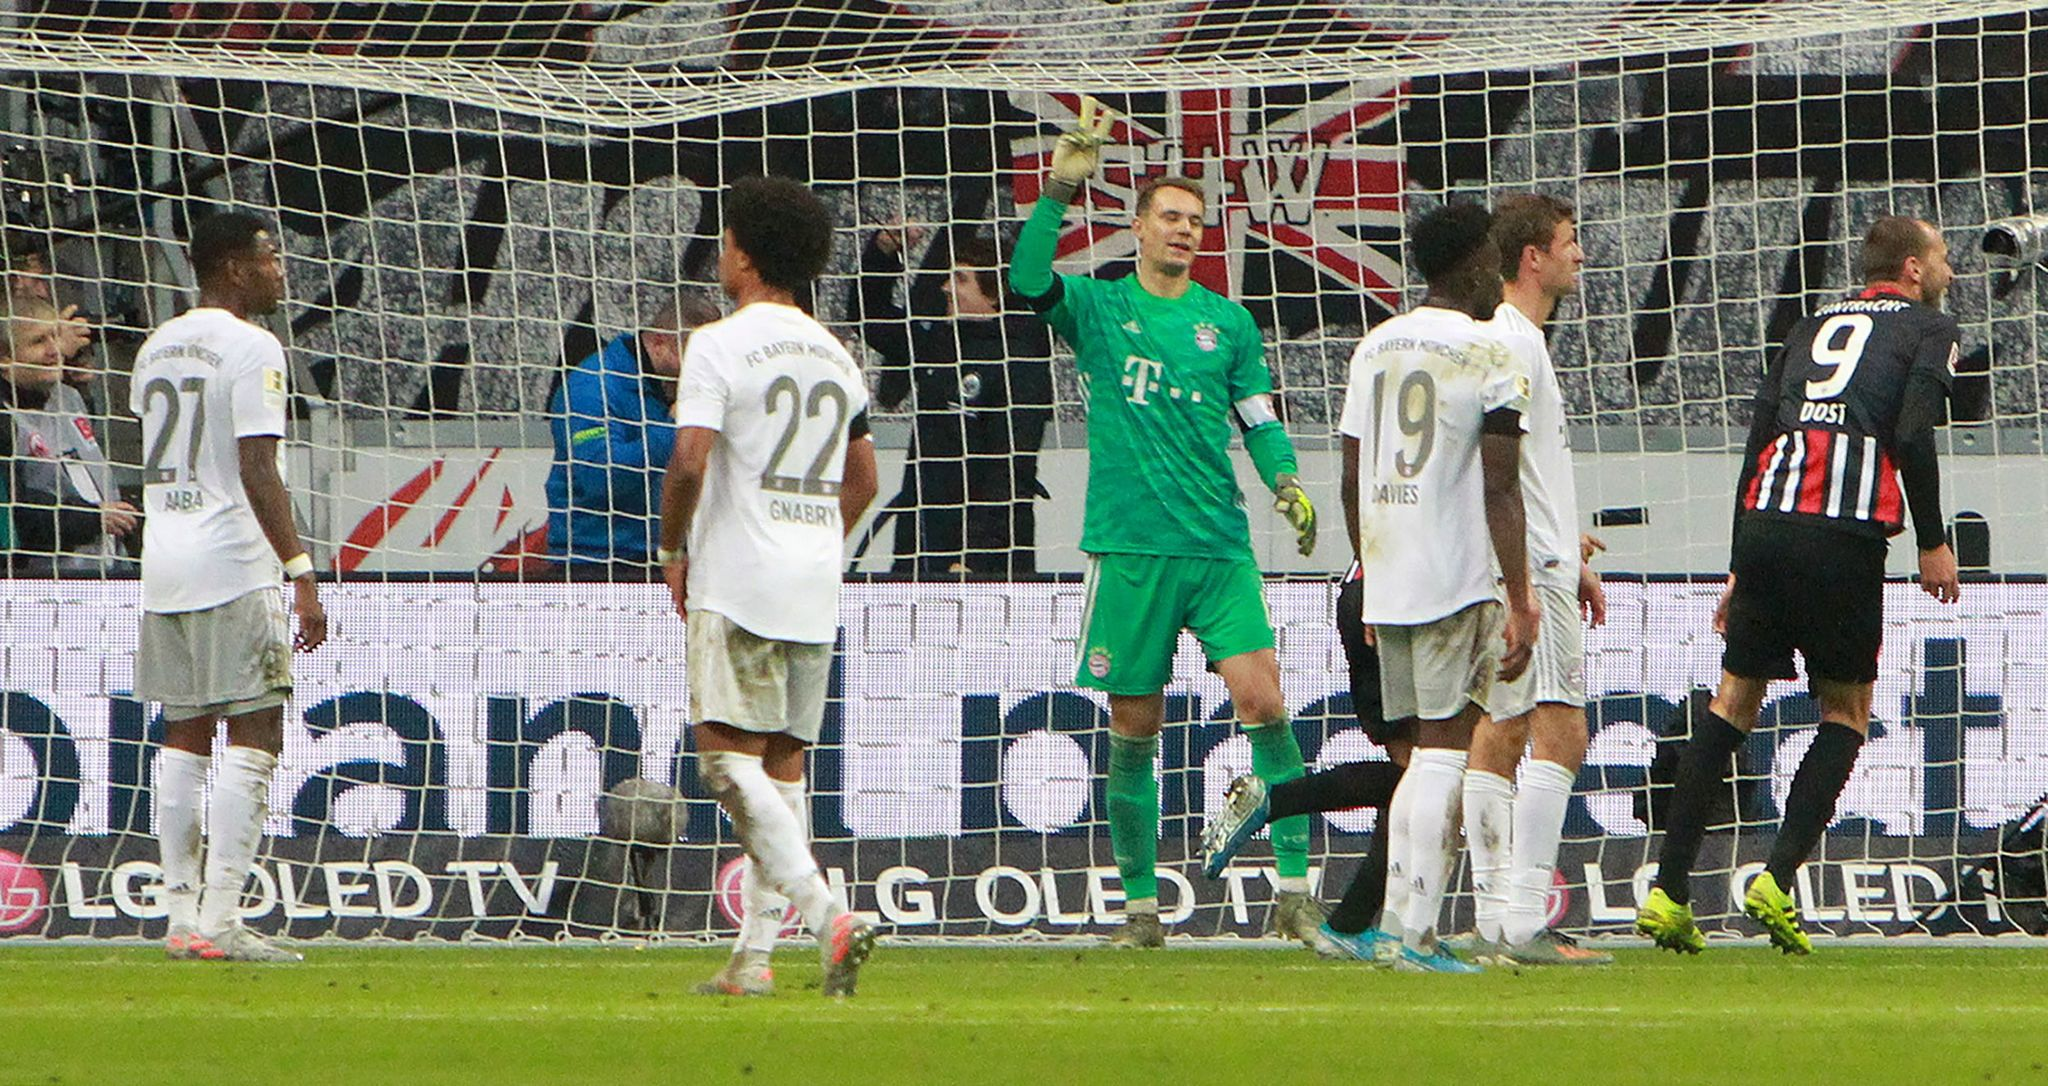 <HIT>Bayern</HIT> Munichs German goalkeeper Manuel Neuer (C) and his teammates react after Frankfurt scored the 4-1 during the German first division Bundesliga football match between Eintracht Frankfurt and FC <HIT>Bayern</HIT> Munich on November 2, 2019 in Frankfurt am Main, western Germany. (Photo by Daniel ROLAND / AFP) / DFL REGULATIONS PROHIBIT ANY USE OF PHOTOGRAPHS AS IMAGE SEQUENCES AND/OR QUASI-VIDEO